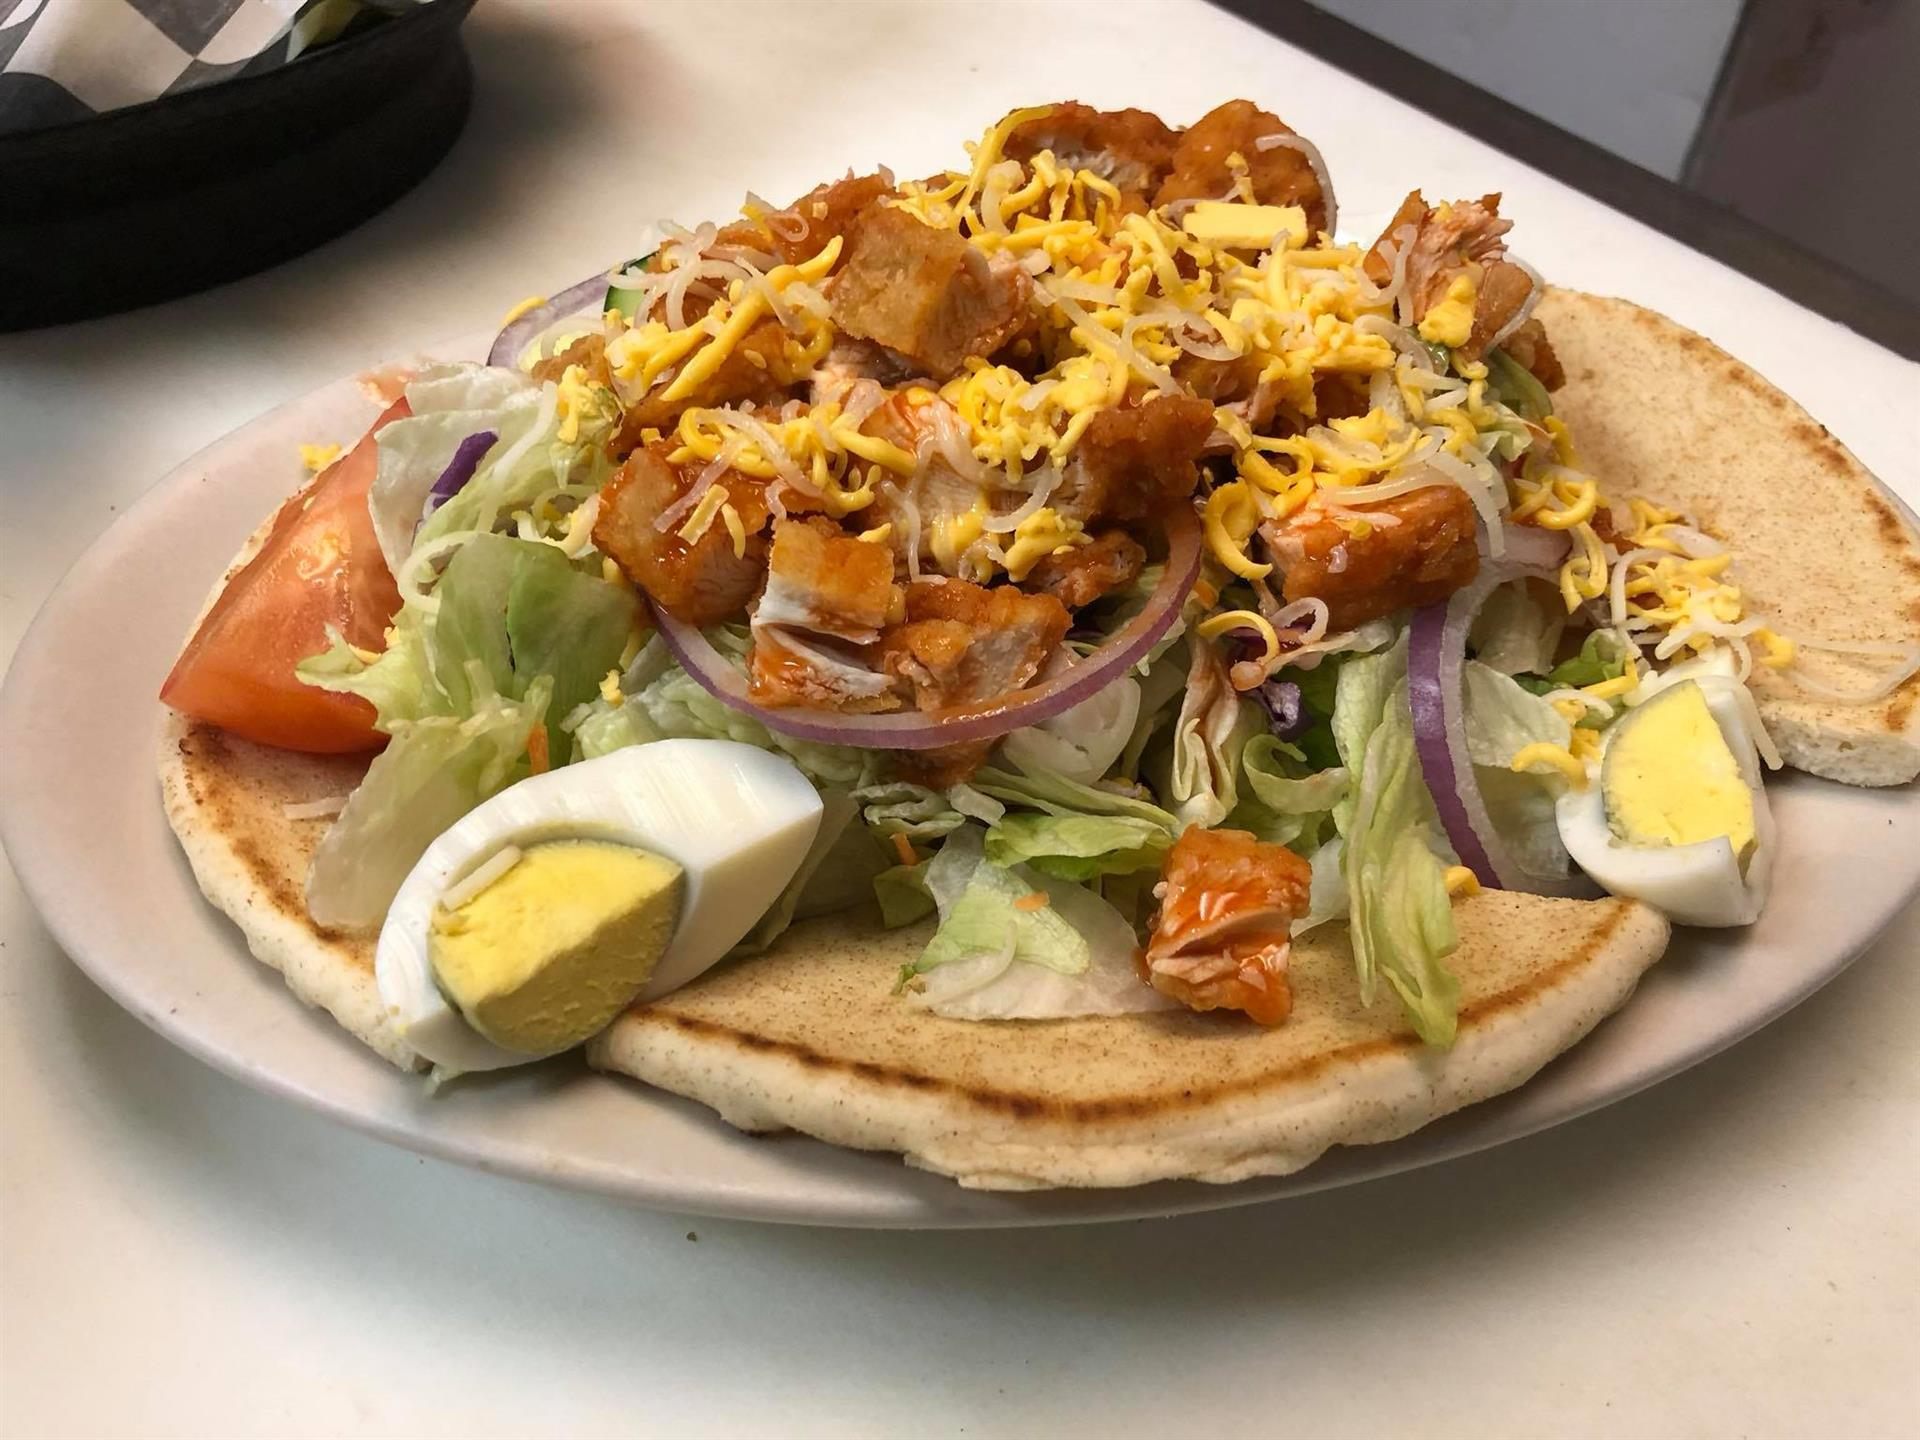 Buffalo chicken salad with cheese, onions and a hard boiled egg over pita